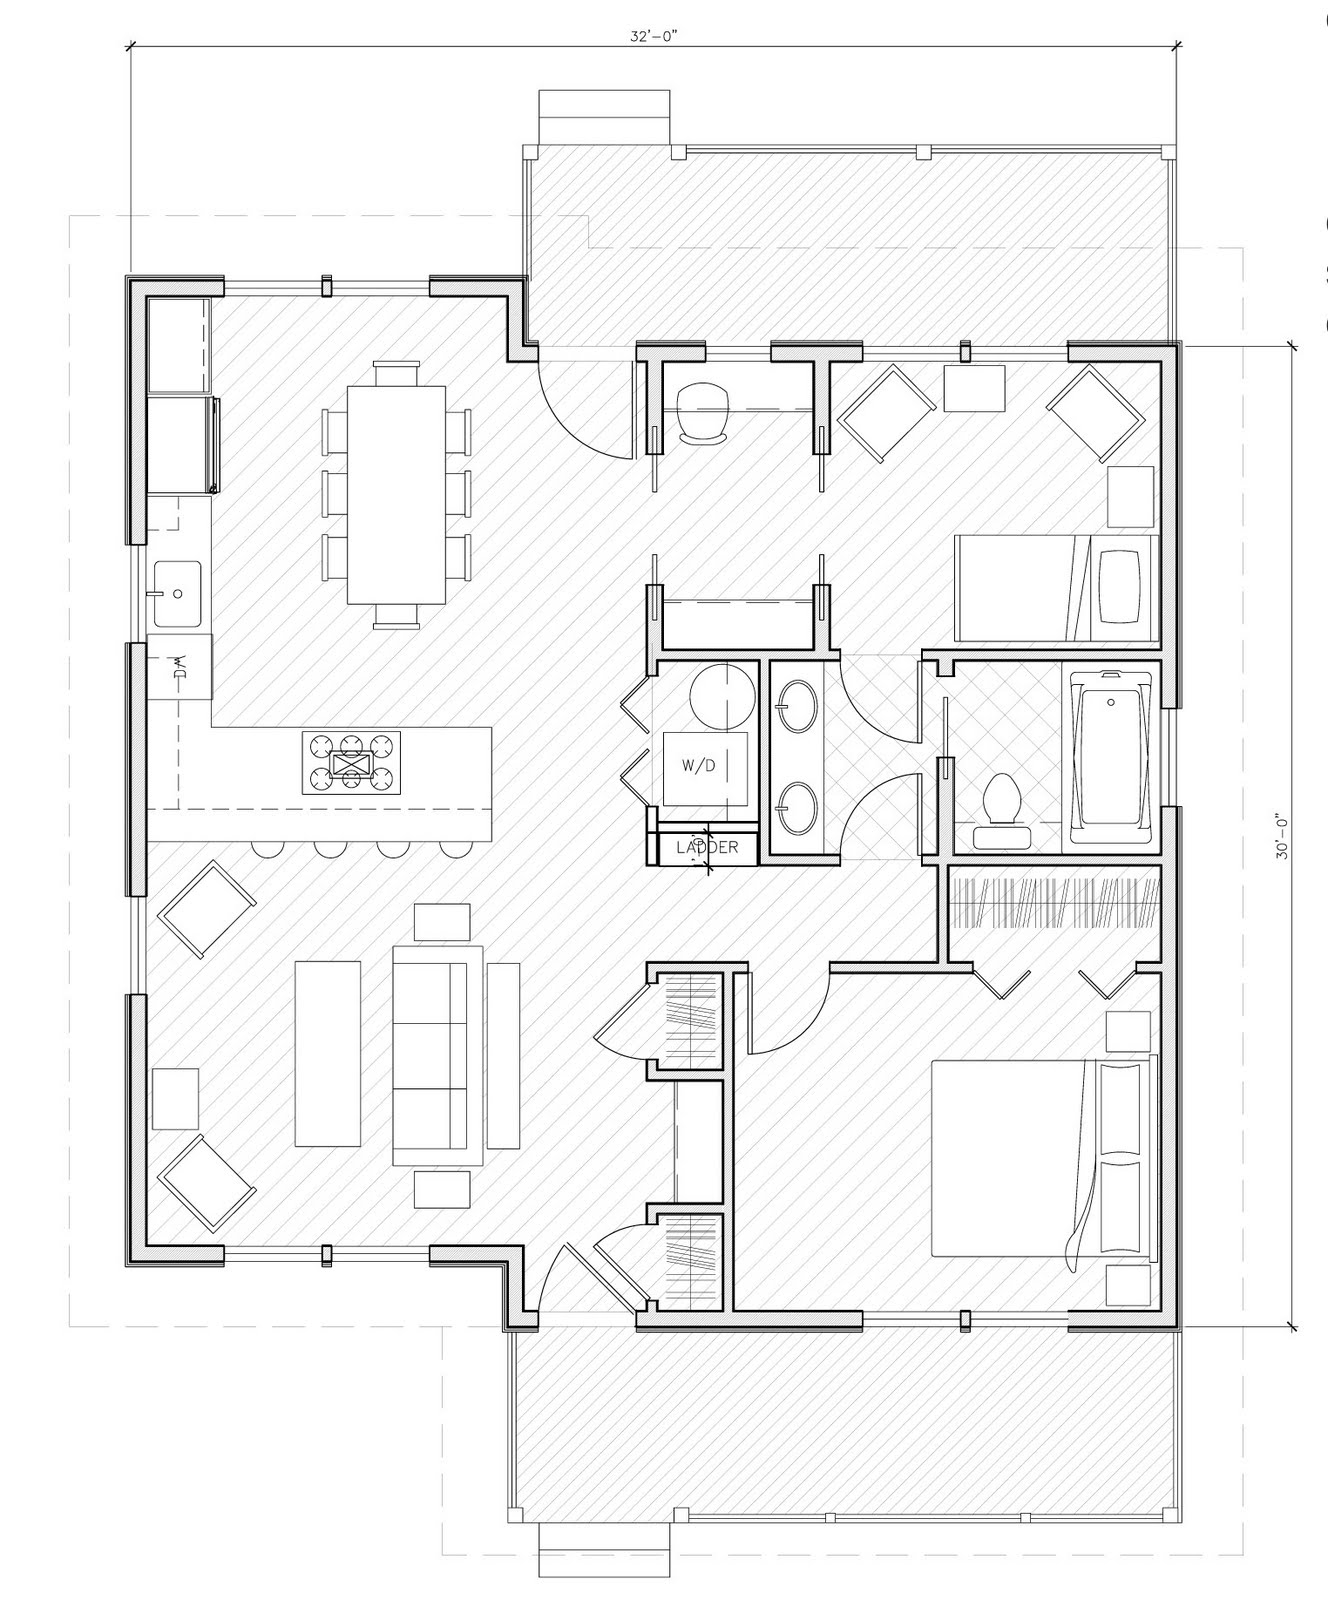 House plans under 1000 square feet joy studio design for 1000 feet house plans